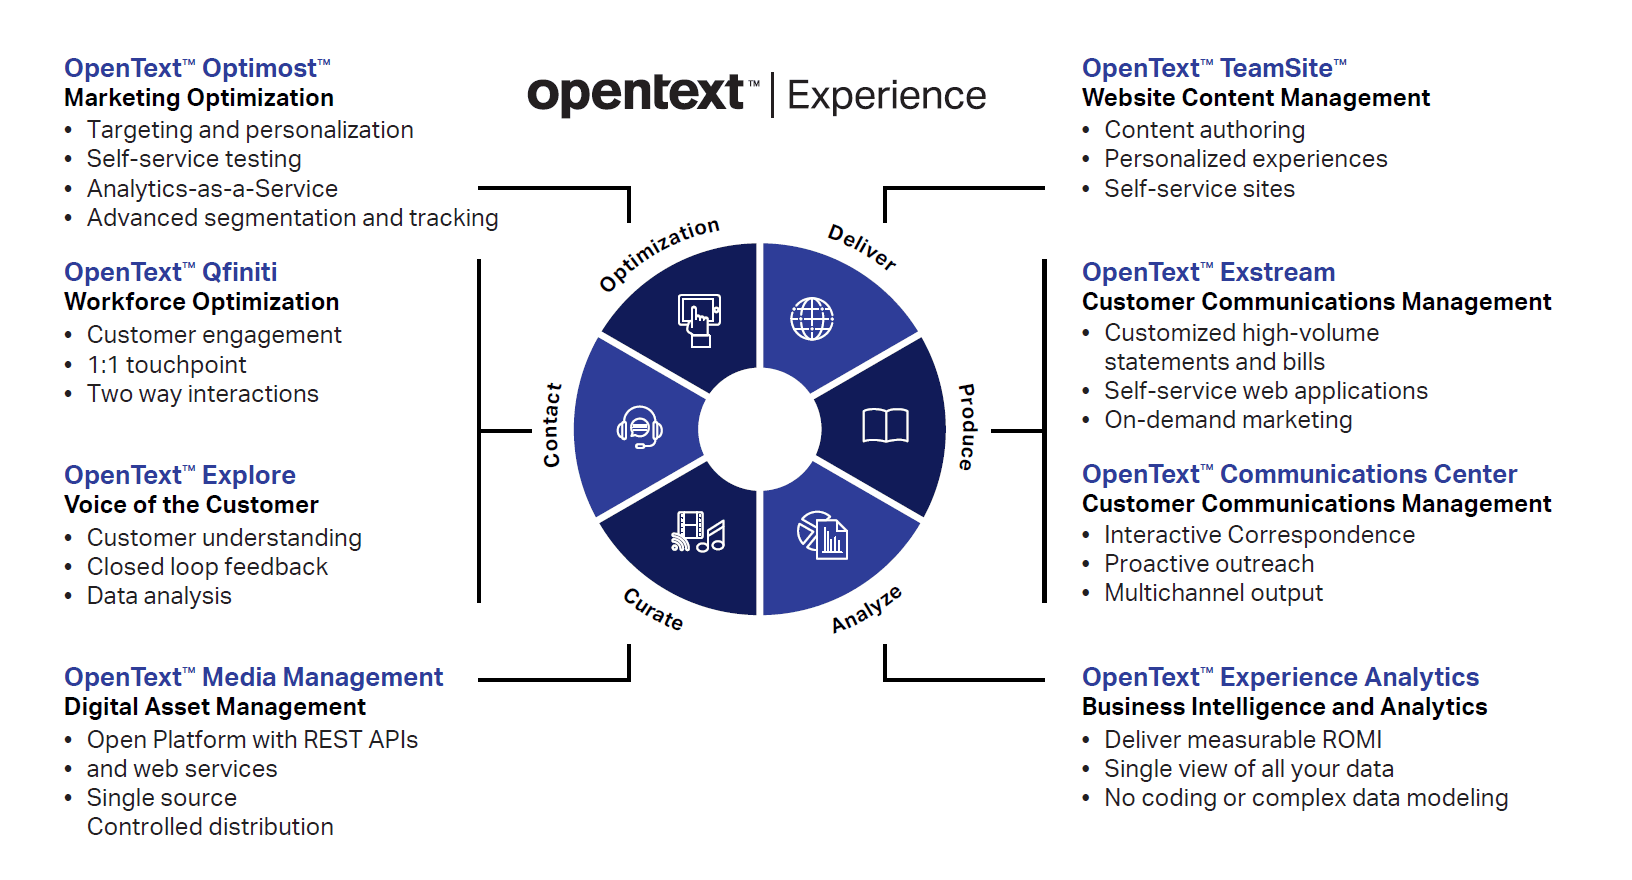 OpenText Exstream Consultation: Does My Organization Need It?